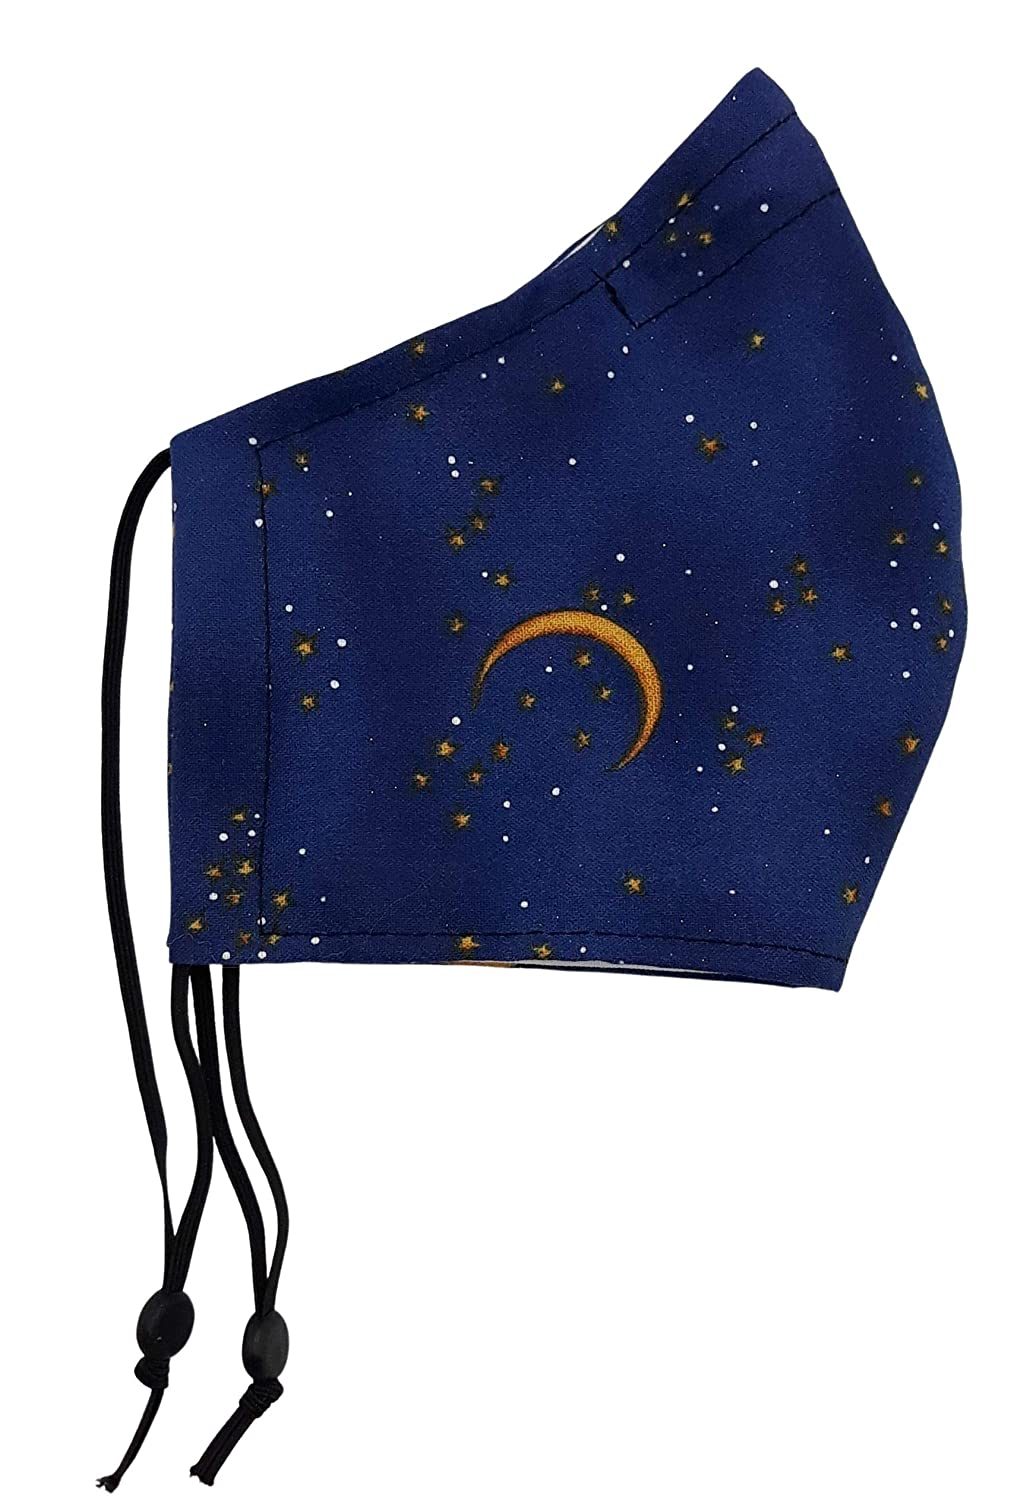 SMALL LADIES TEEN Size New item Translated Face Mask- Filter Navy Mask Moon Poc